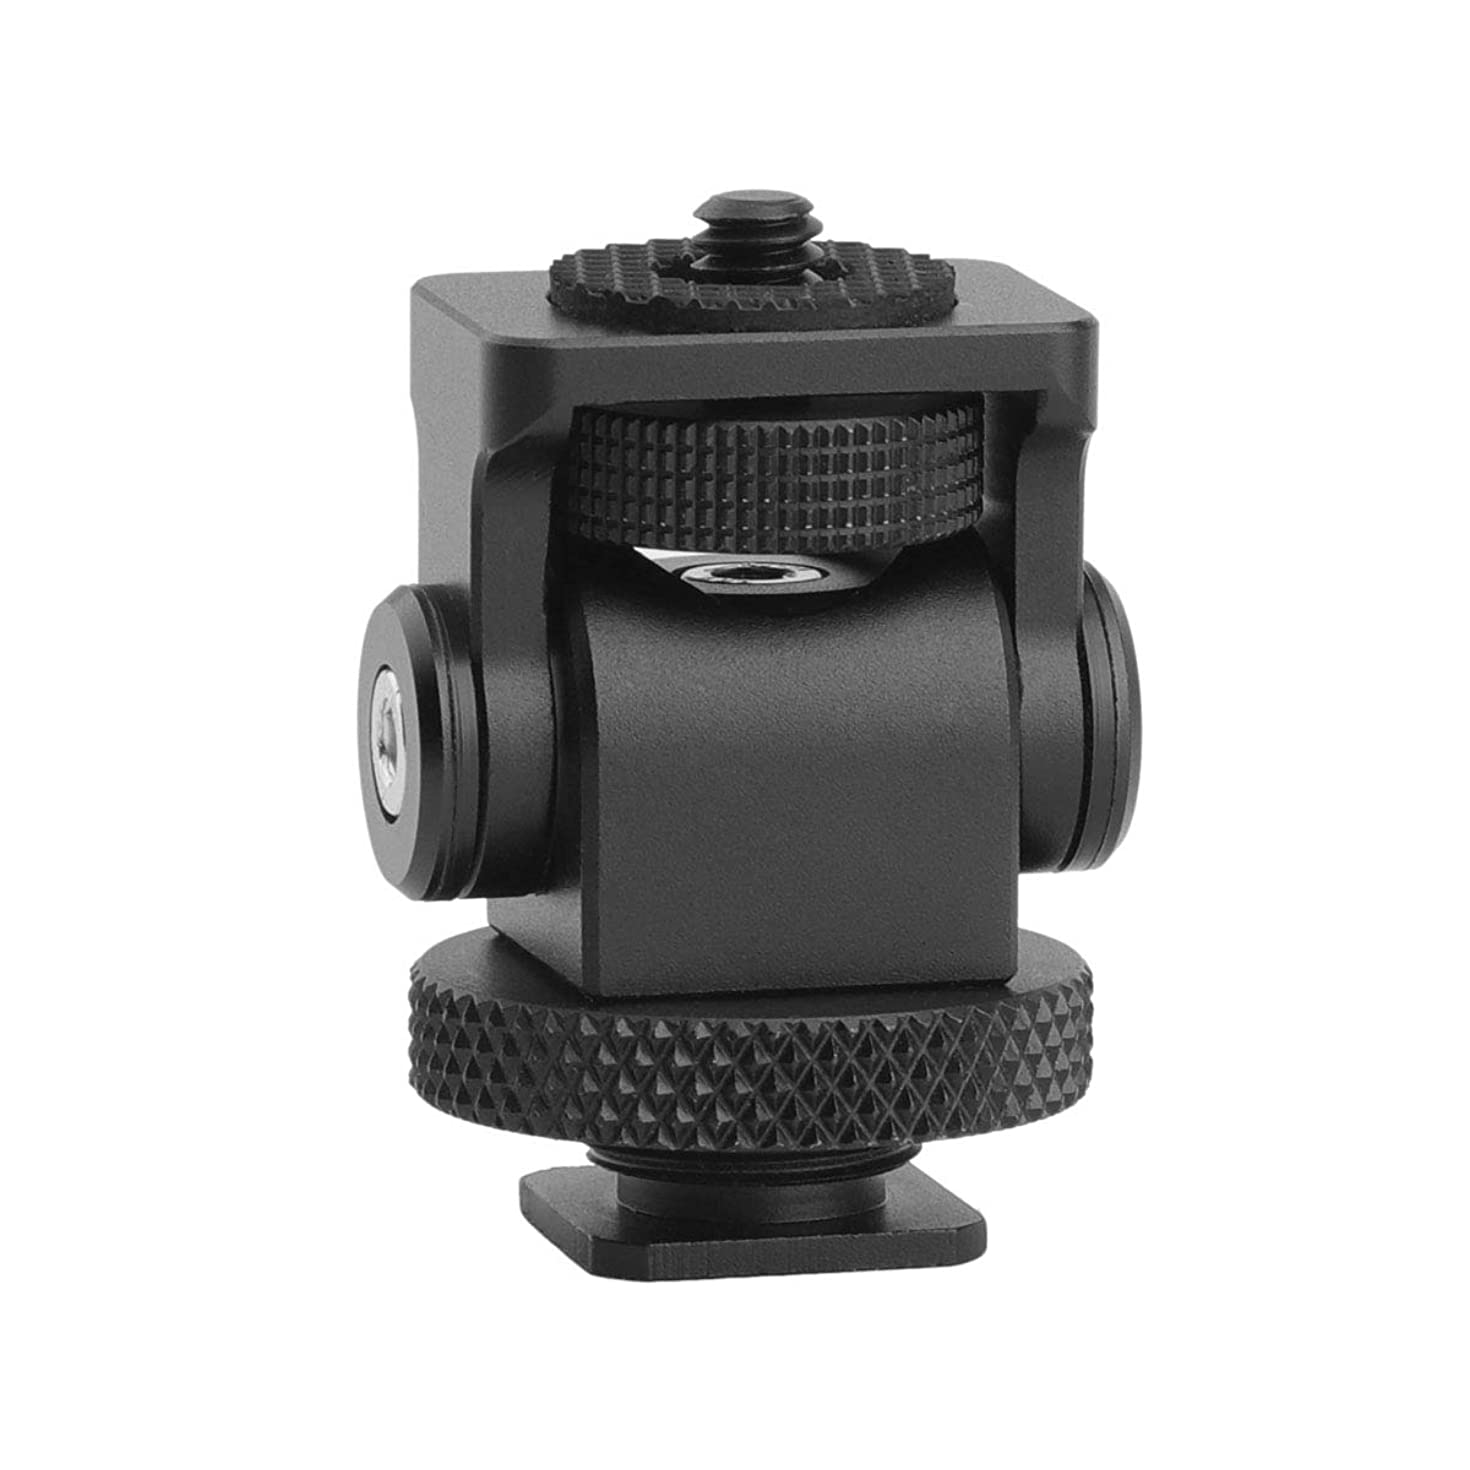 AFVO Tooless Pan Camera Monitor Holder Mount with Cold Shoe, Friction Up to 180°, CNC Aluminium Black